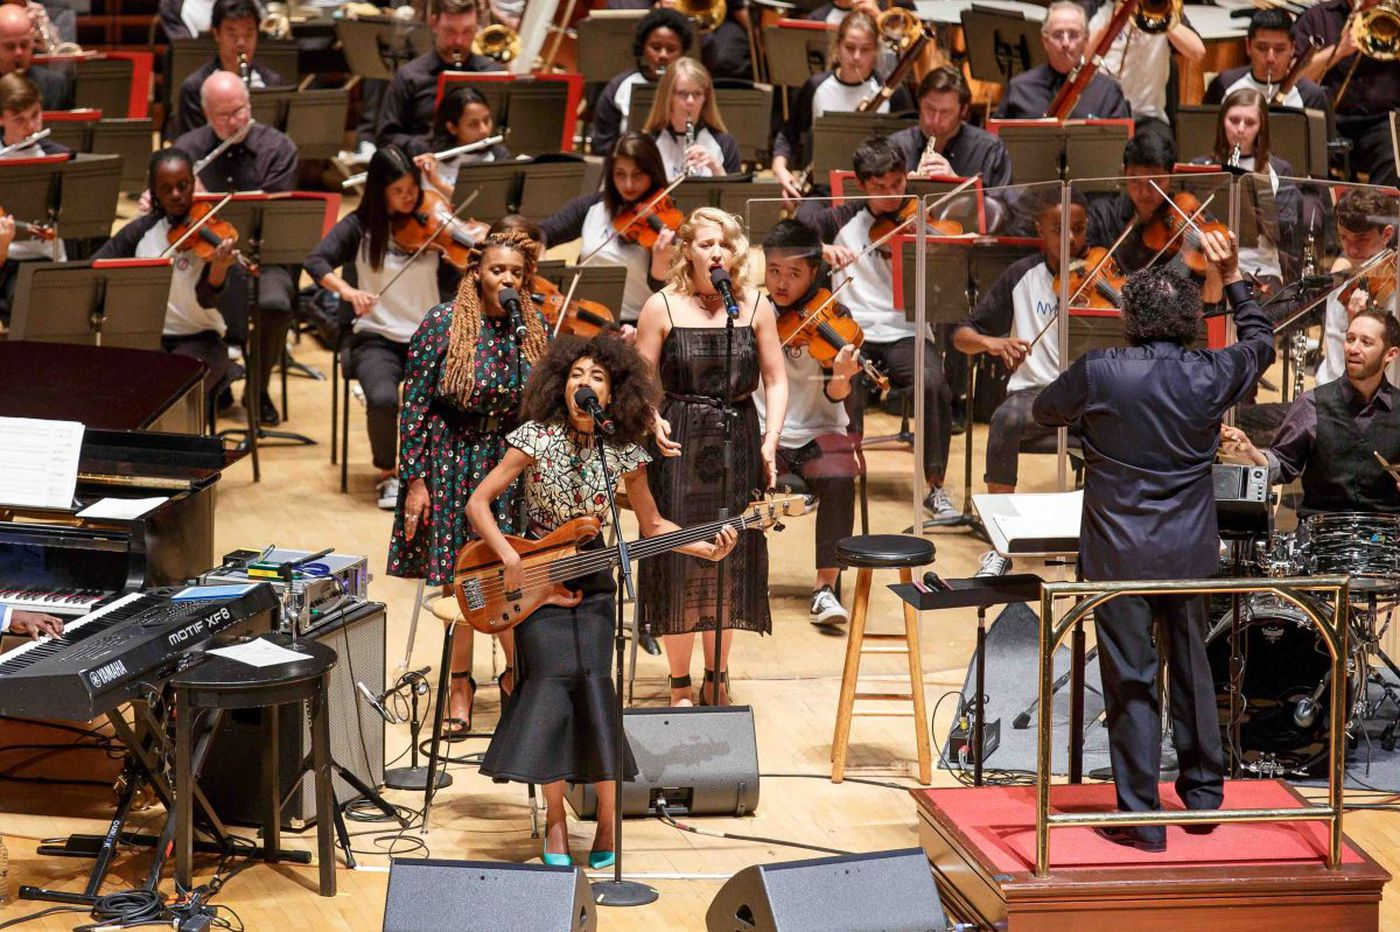 Esperanza Spalding brings her best diva brilliance to the Philadelphia Orchestra - and some great shoes